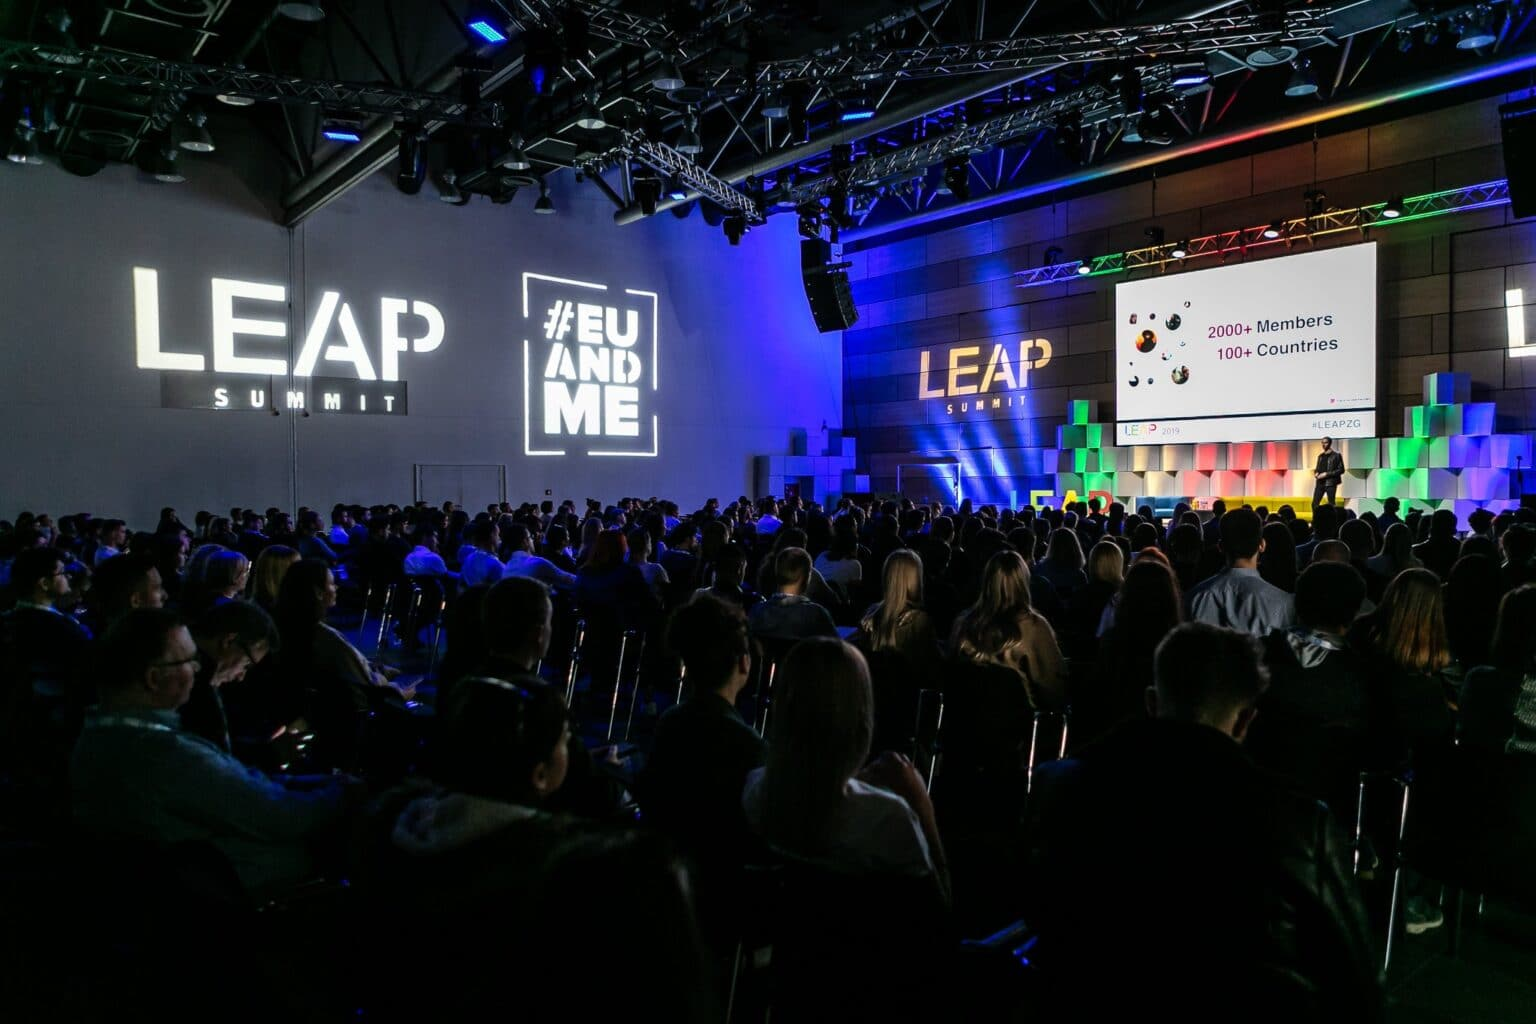 Leap Summit Zagreb Where Changemakers Leap Into Action